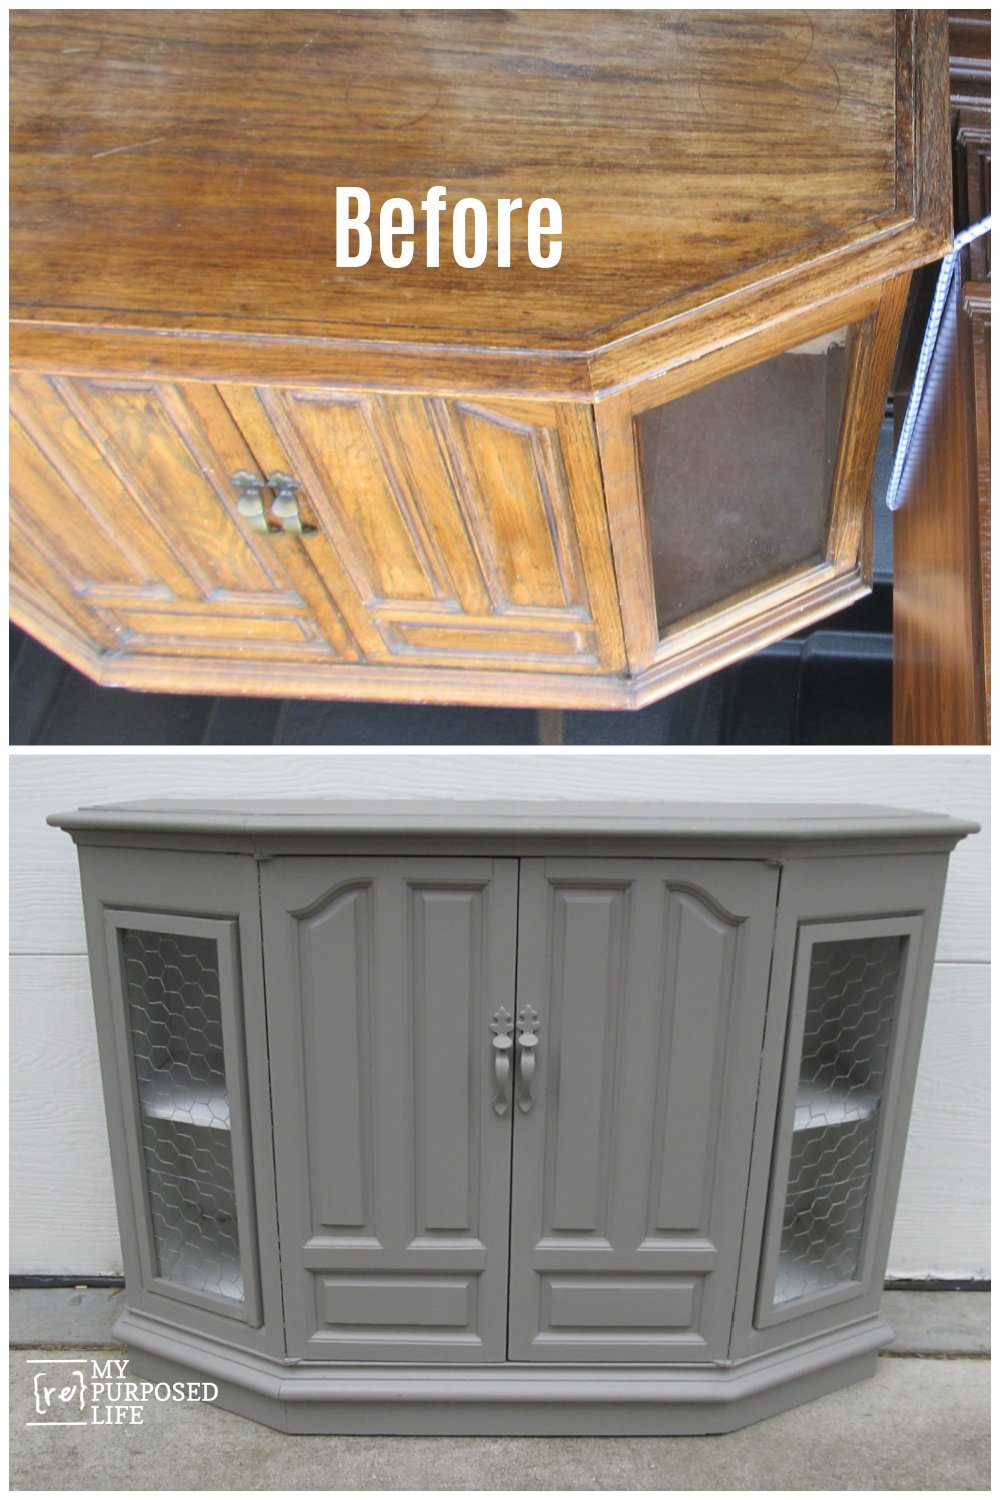 You won't believe this awesome plastic cabinet makeover. Maybe you call it a console? It's one of those plastic pieces made to look like wood. #MyRepurposedLife #repurposed #furniture #makeover #plastic #cabinet #painted #furniture via @repurposedlife